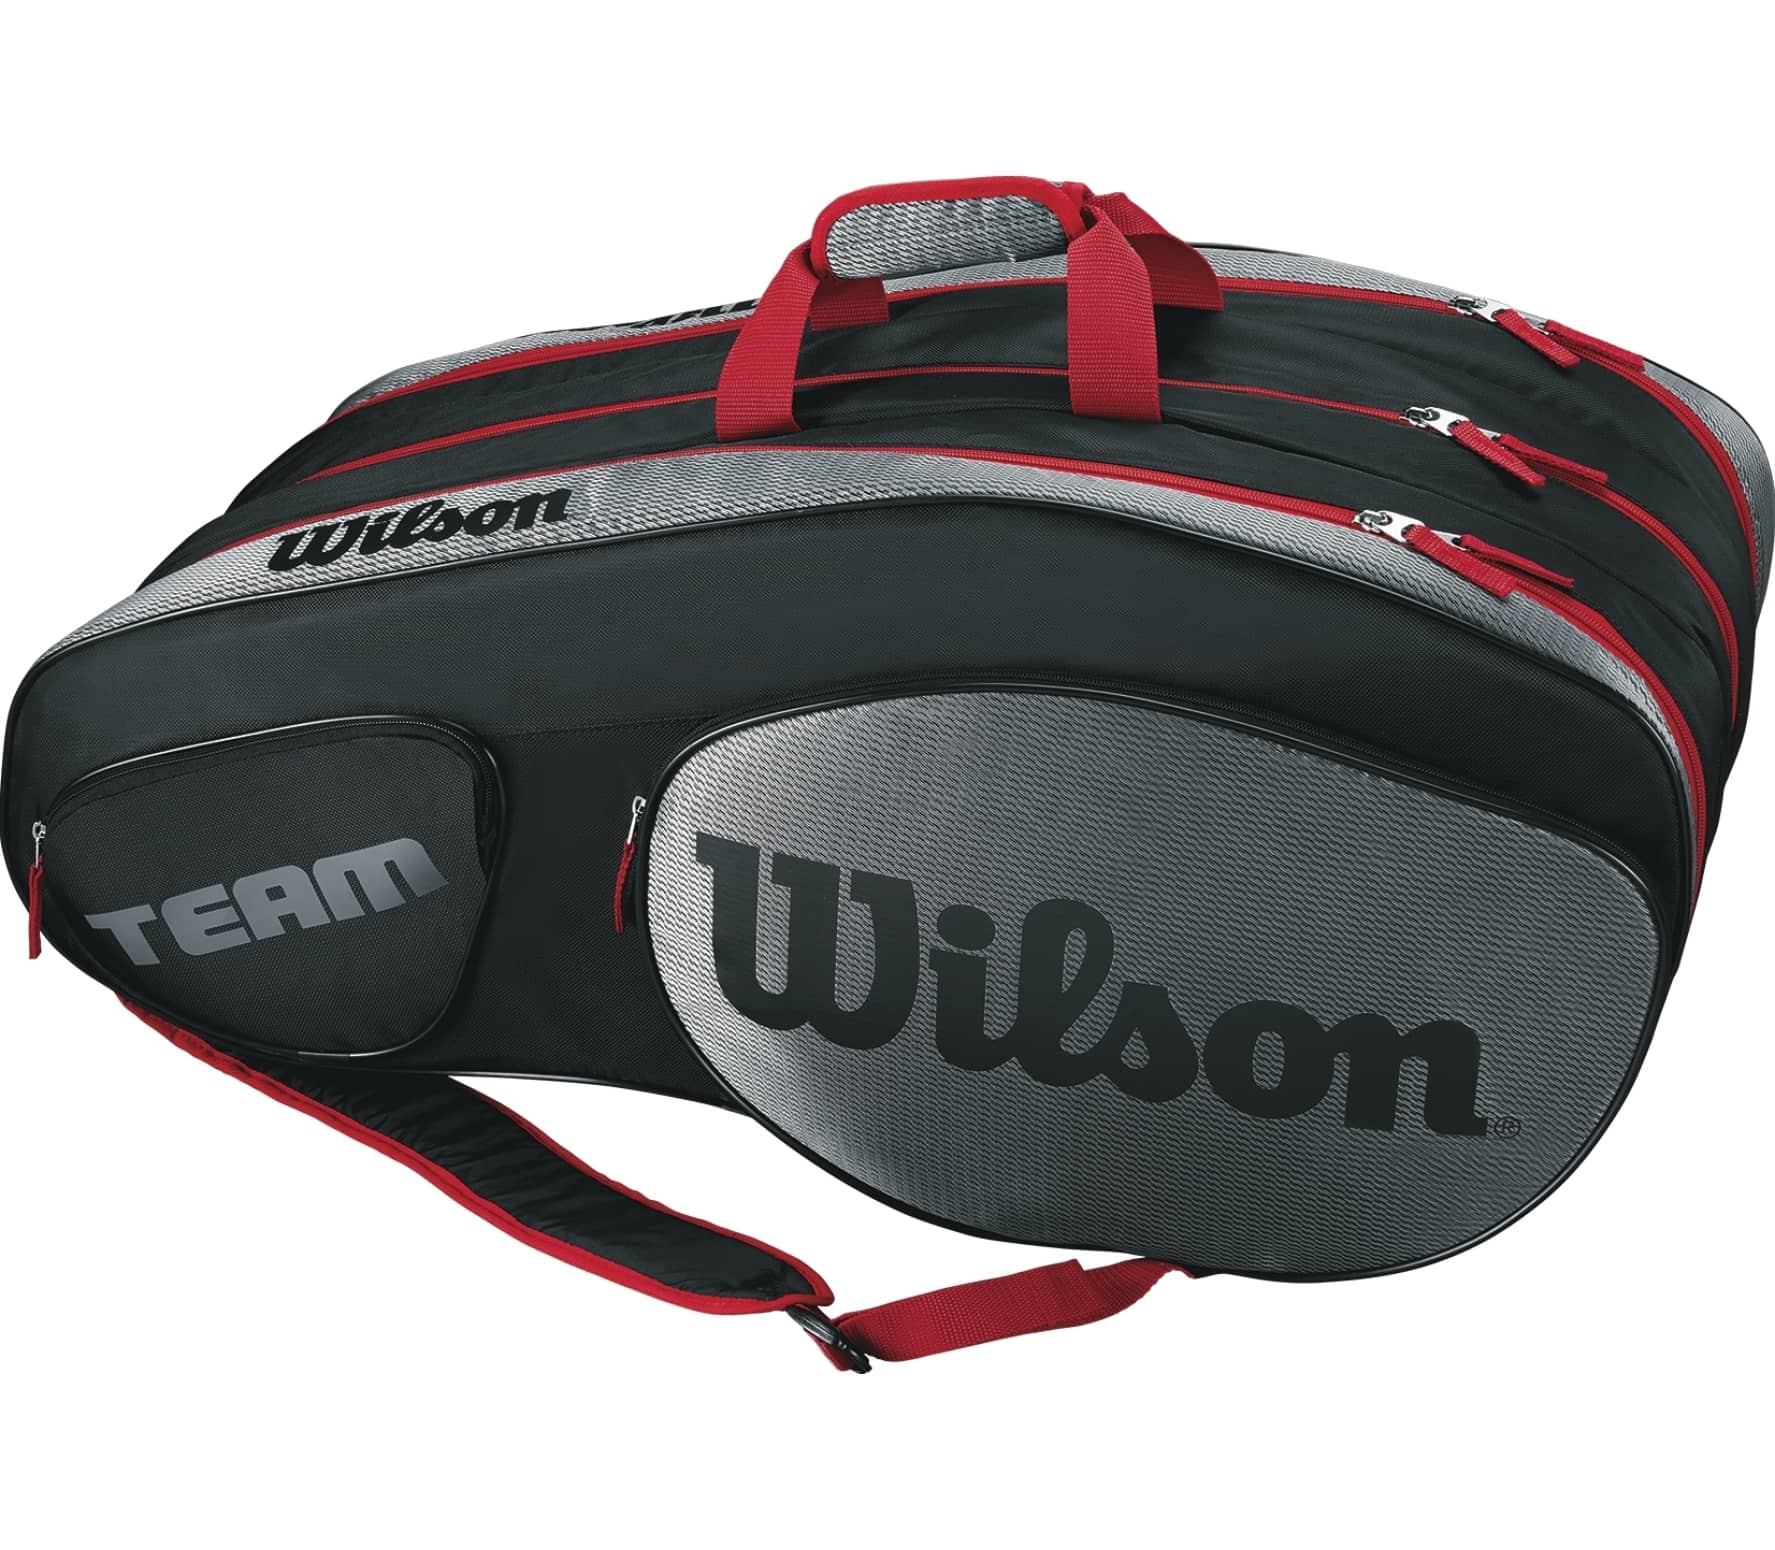 a49595f349a Wilson - Team III 12 Pack tennis bag (black/red) - buy it at the ...